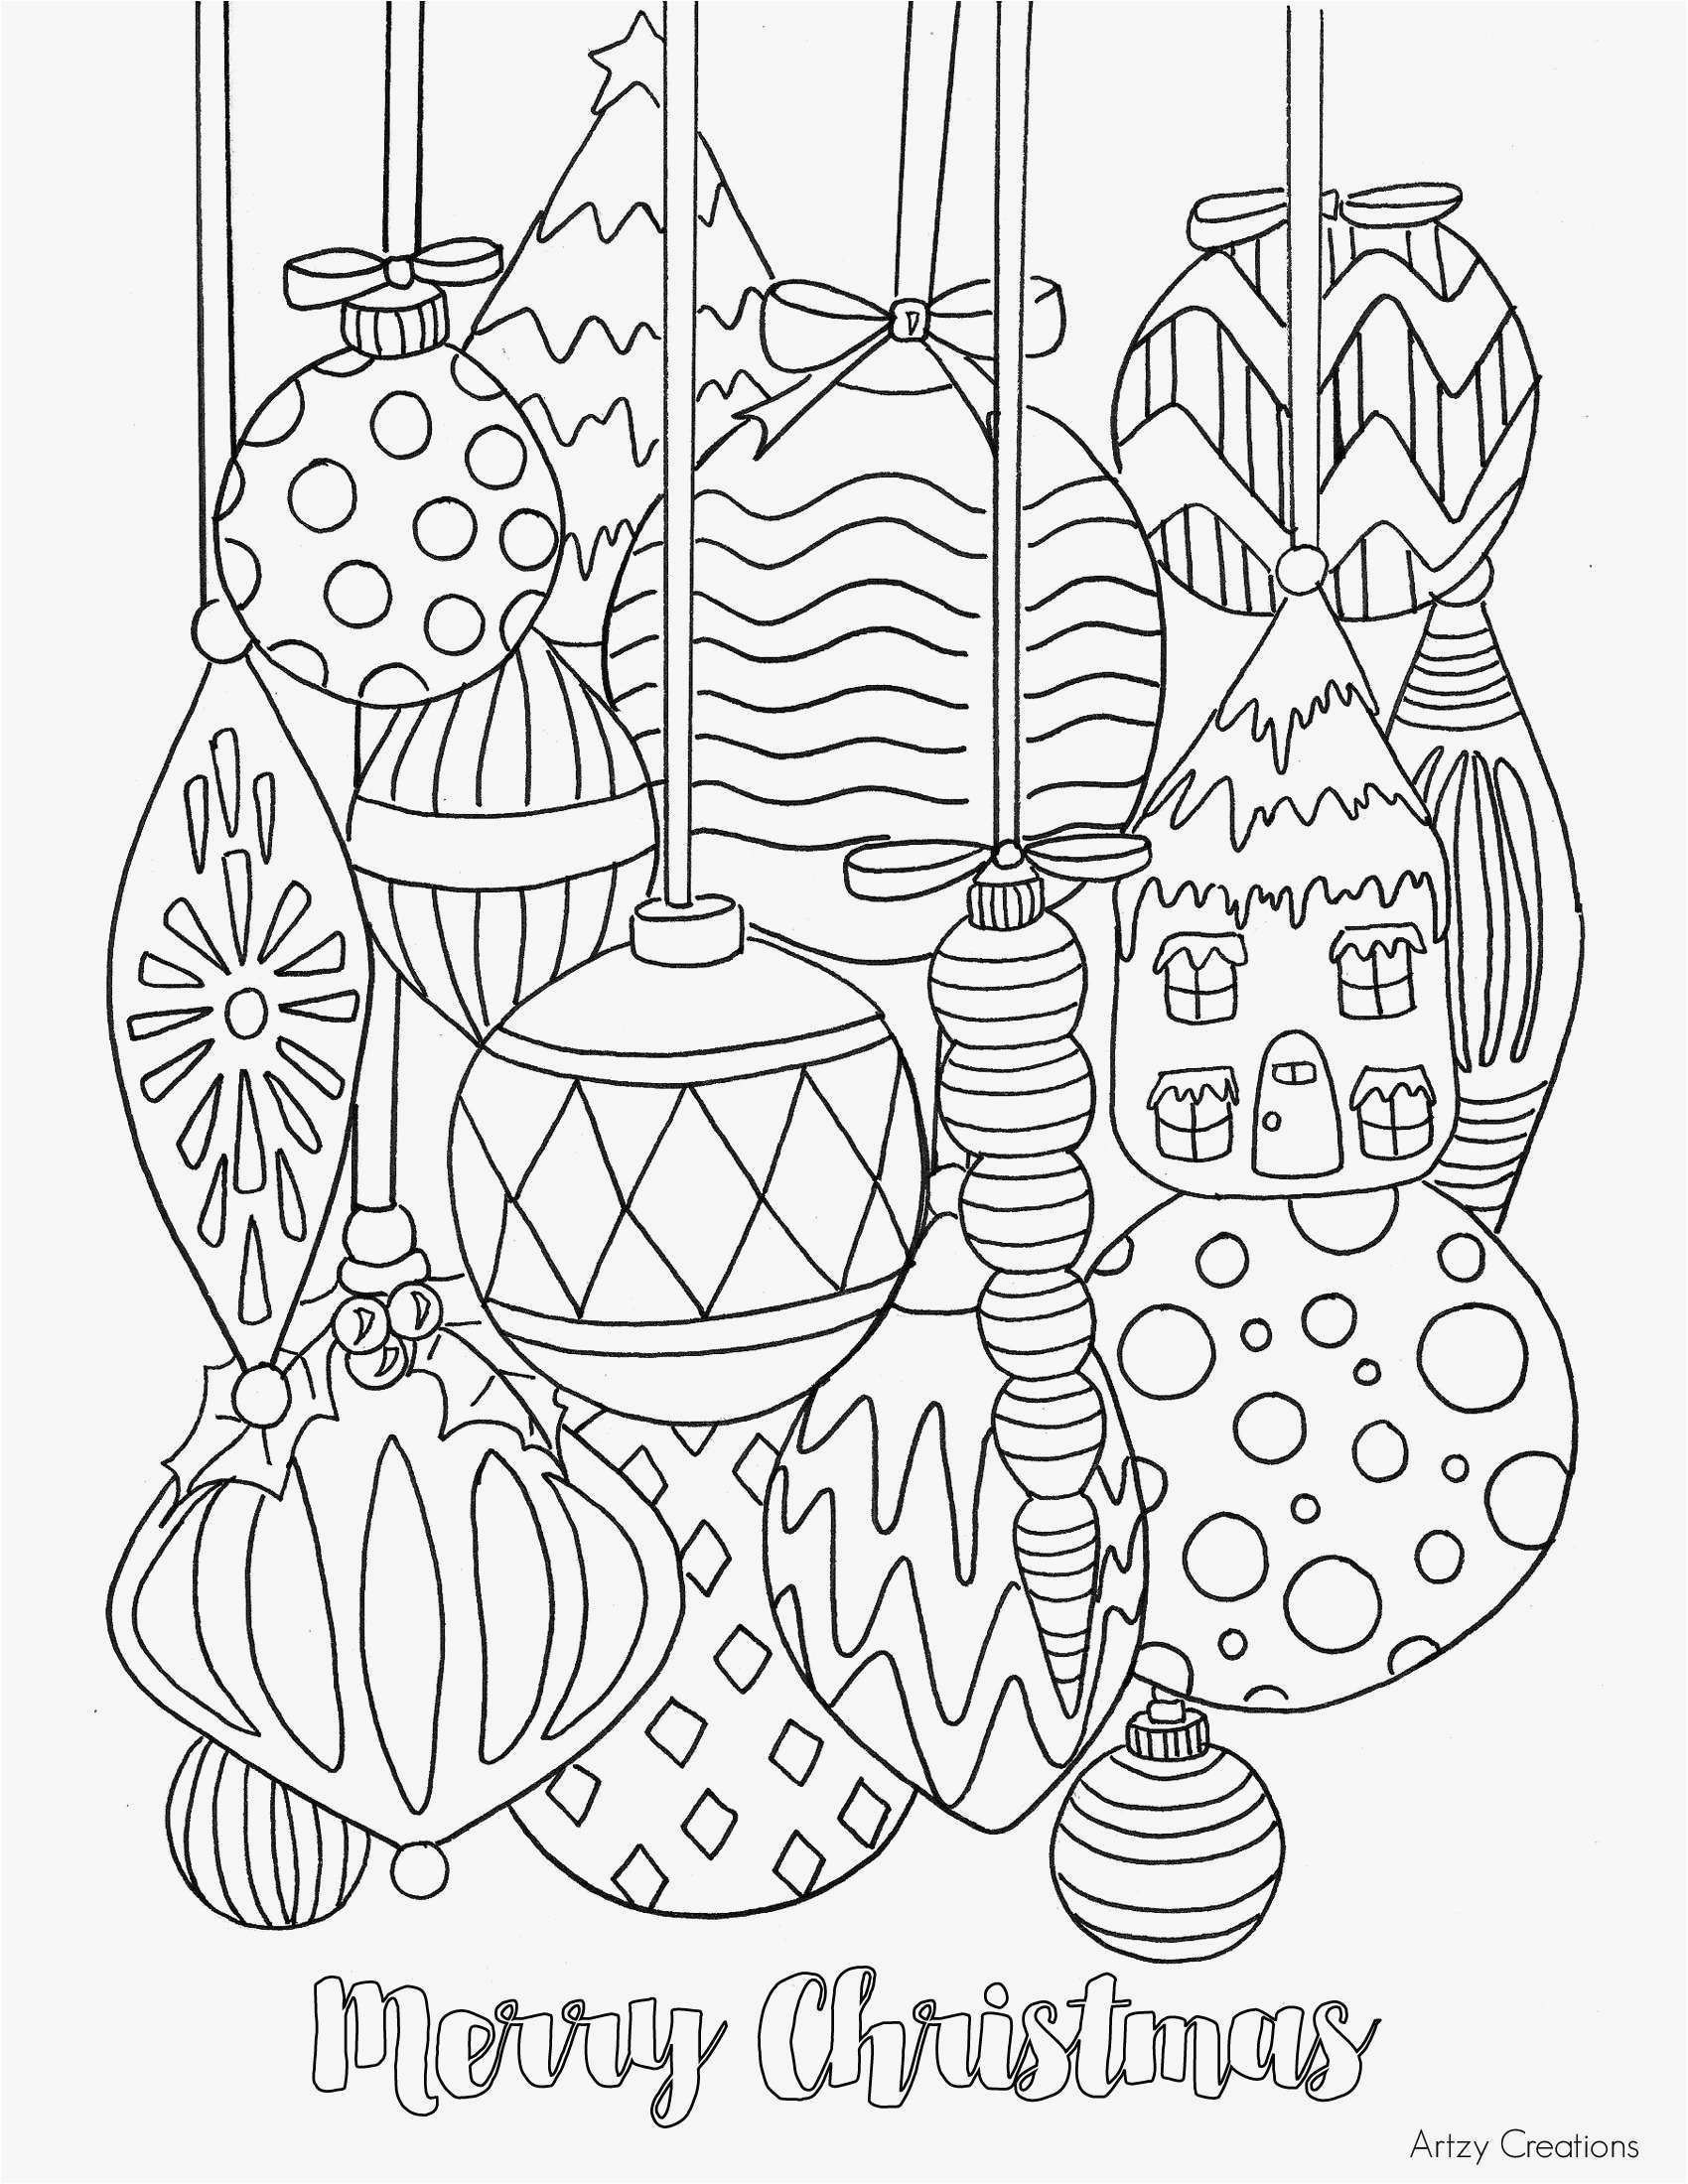 Christmas Mandala Coloring Pages Coloring Pages Christmas Mandala Col Free Christmas Coloring Pages Printable Christmas Coloring Pages Christmas Coloring Books